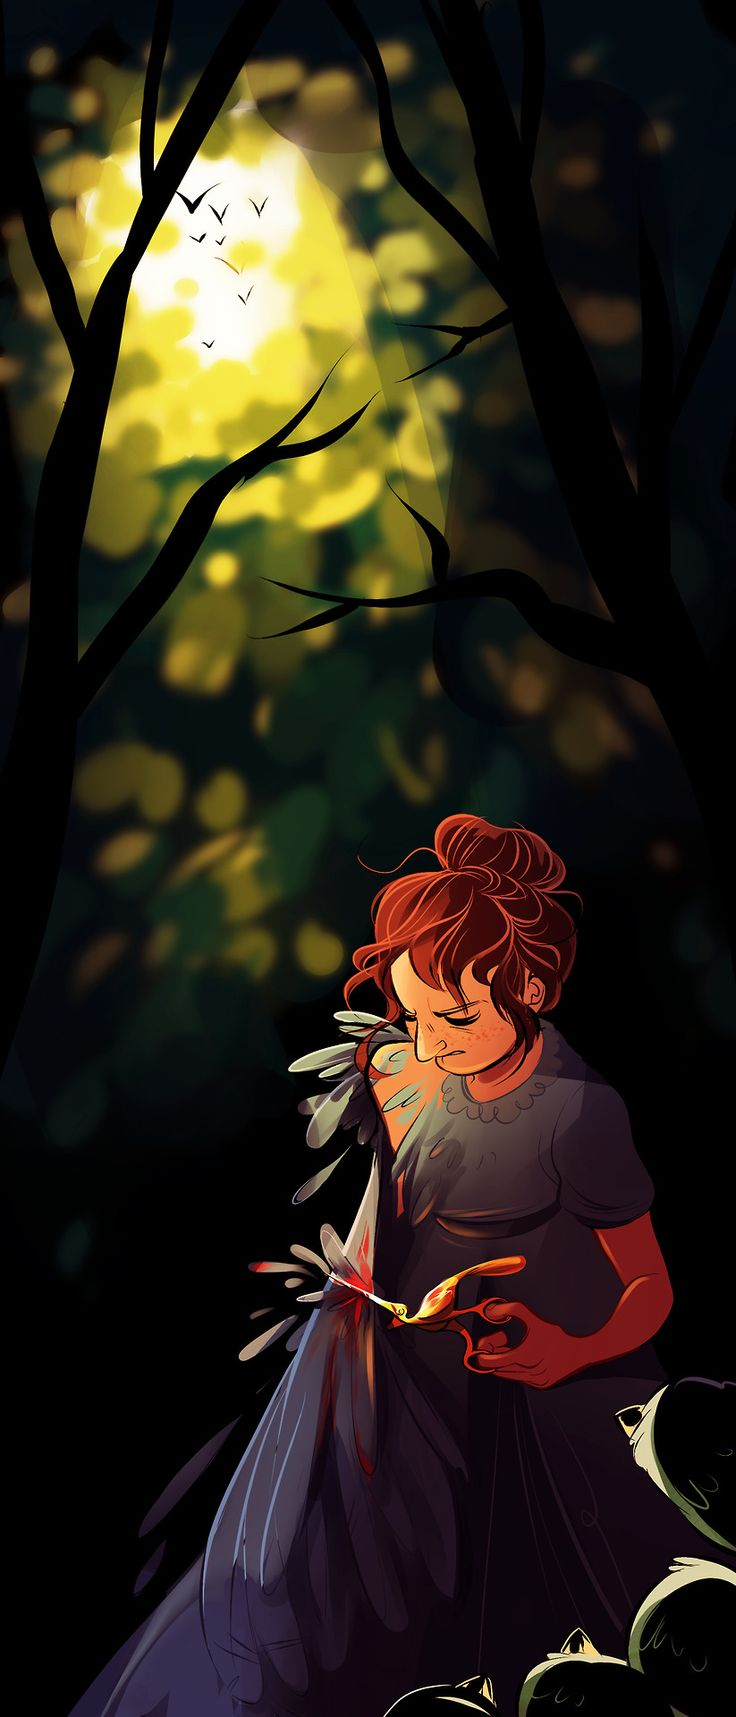 Just another dirt in the wall - Geniusbee Otgw Spoilers Adelaide Told Her To Clip Her Wings Her Family S Wings And Maybe That Was Just A Way To Trap Them In The Unknown Unable To Fly